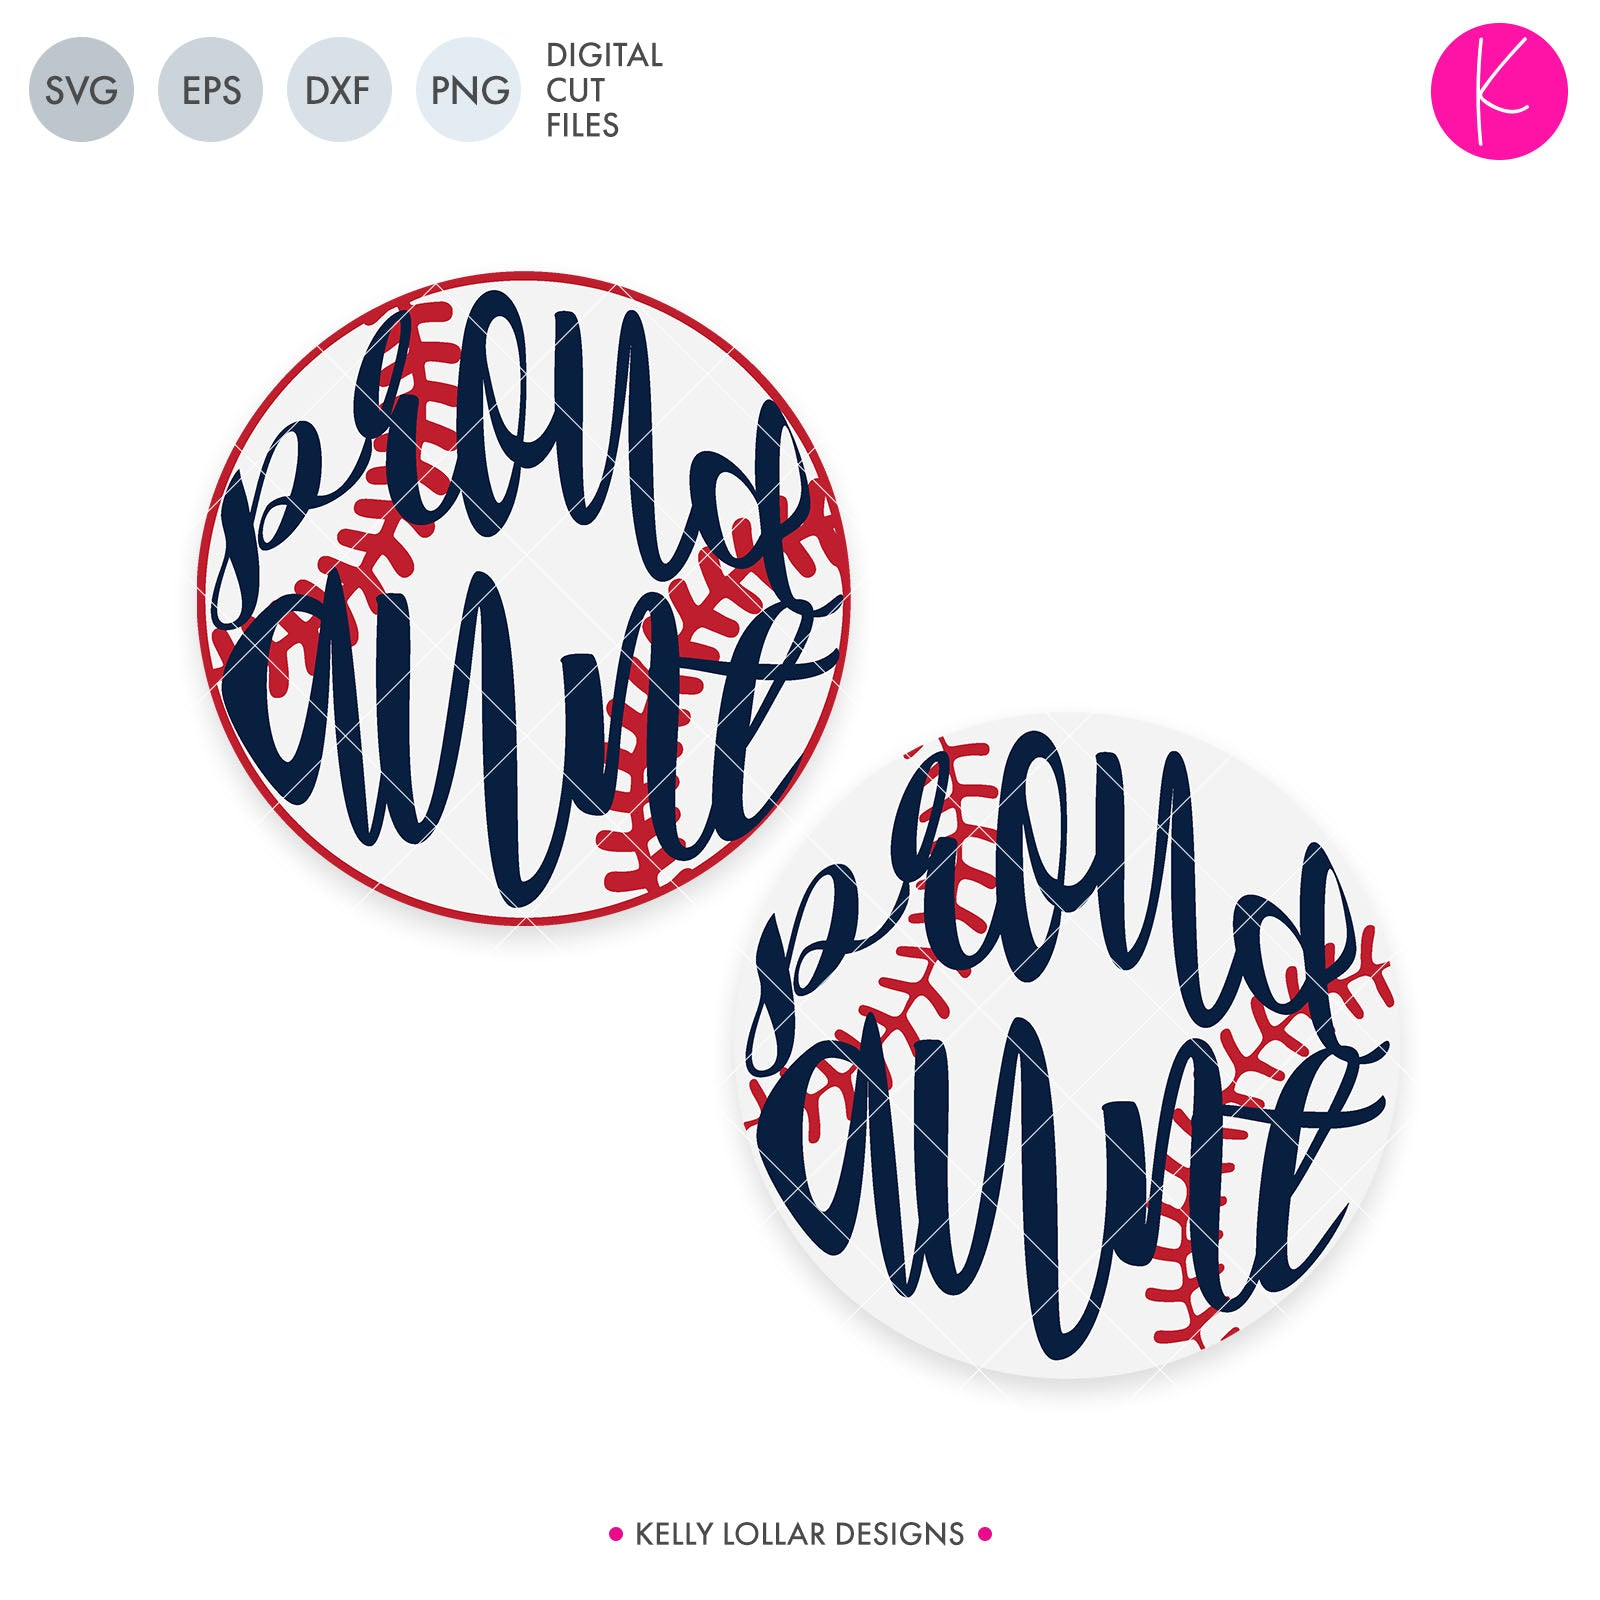 Proud Family Baseball / Softball SVG Cut Files Baseball or Softball with Proud Family Member's Name in Script for the Women and Print for the Men | SVG DXF PNG Cut Files Choose from individual files or the